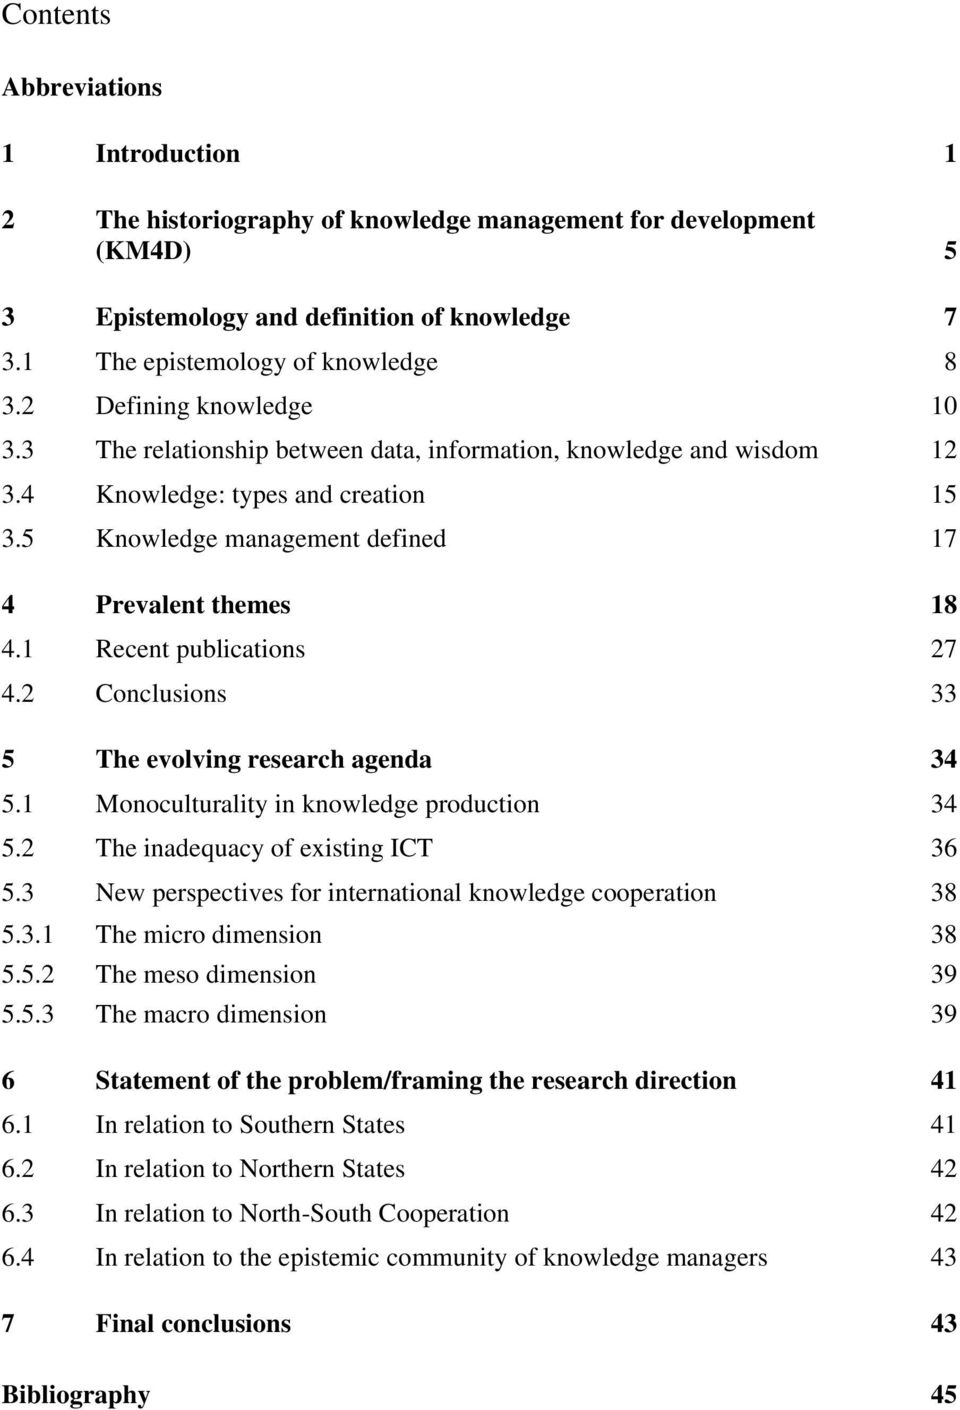 1 Recent publications 27 4.2 Conclusions 33 5 The evolving research agenda 34 5.1 Monoculturality in knowledge production 34 5.2 The inadequacy of existing ICT 36 5.